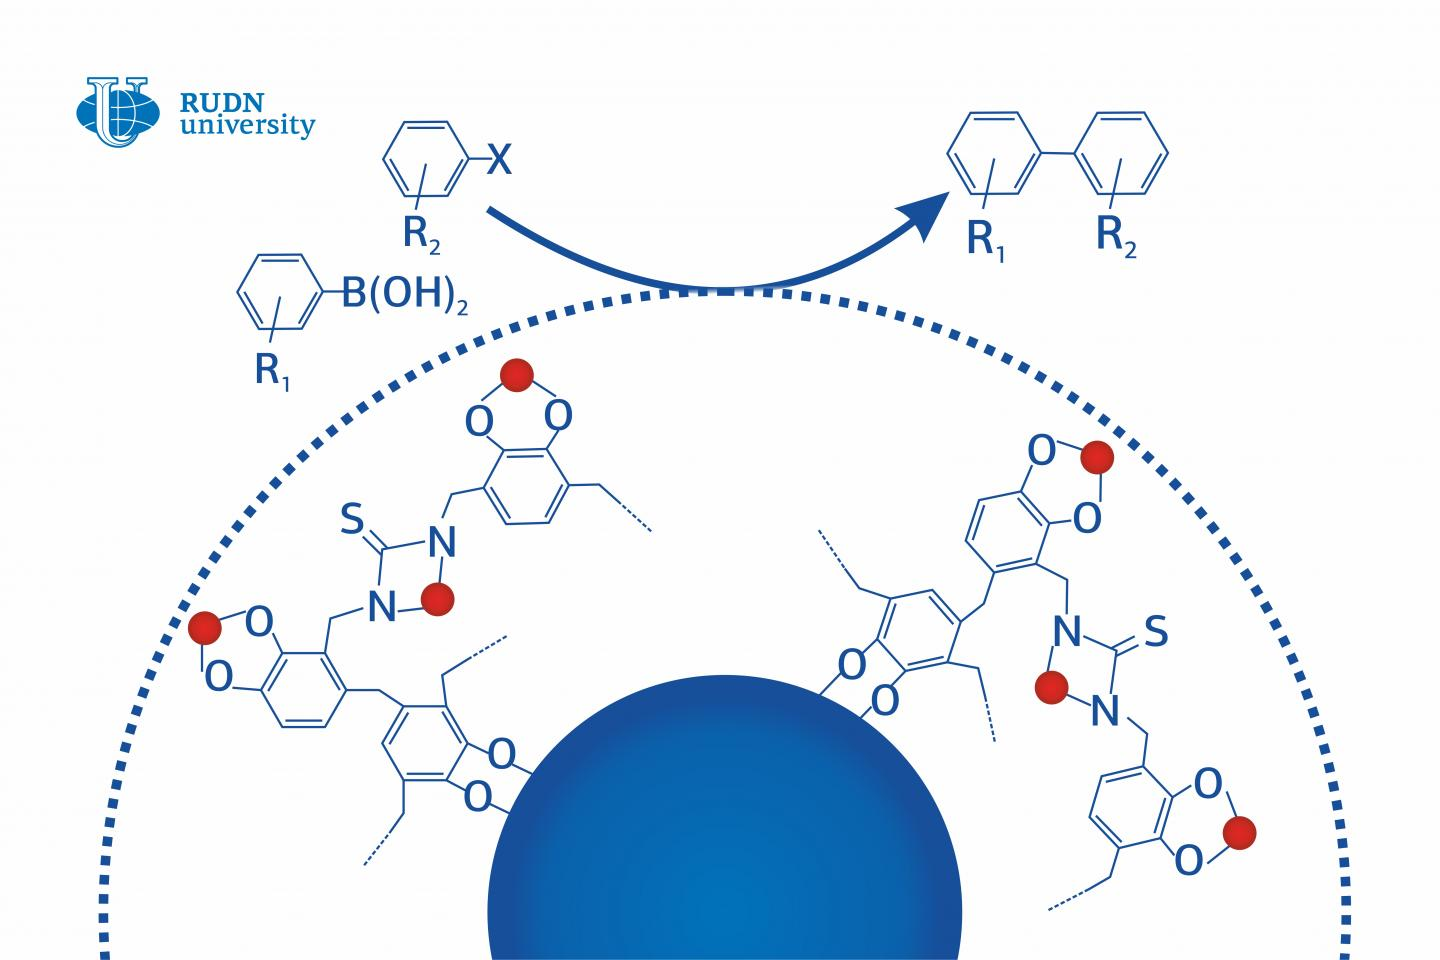 A Chemist from RUDN Developed a Green Catalyst for Pharmaceuticals and Industrial Chemistry